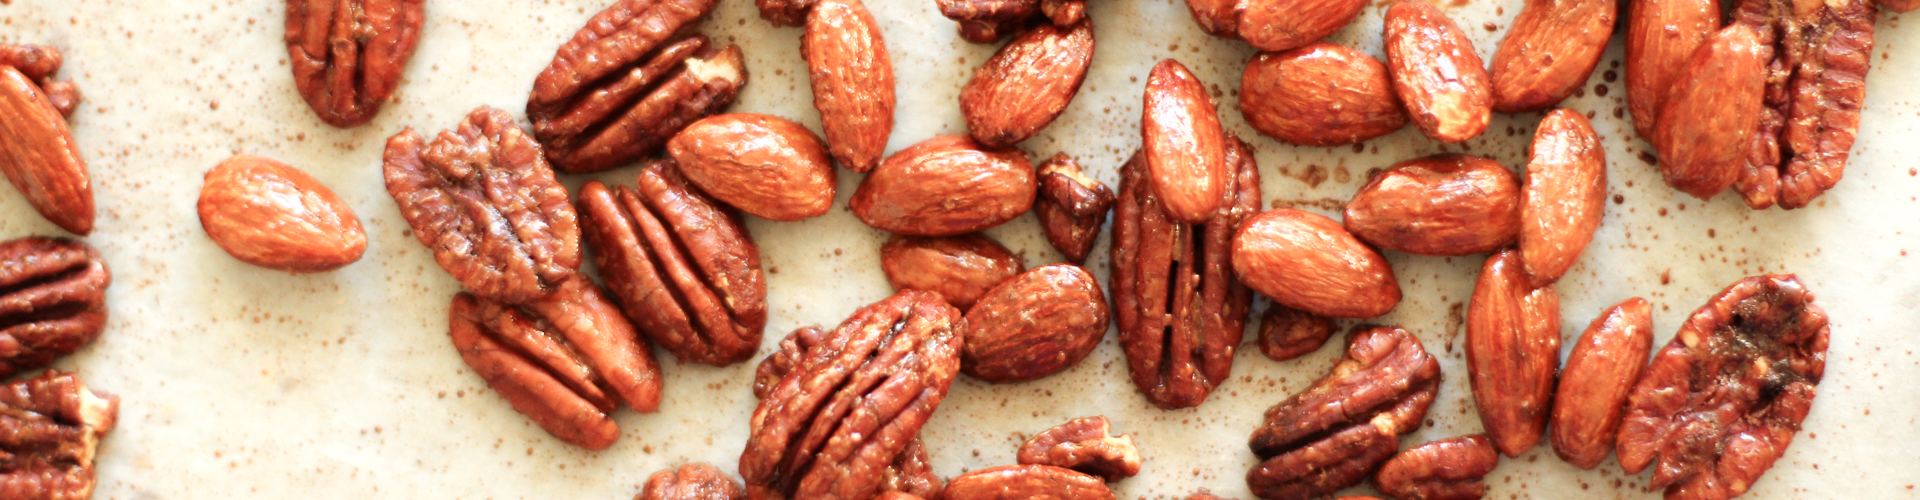 <p>Adding Fresh Plum Concentrate and honey to roasted nuts deepens the caramelization without as much stickiness as using honey alone. The result is an addictive, lightly sweet snack that maintains its crunchy texture.</p>